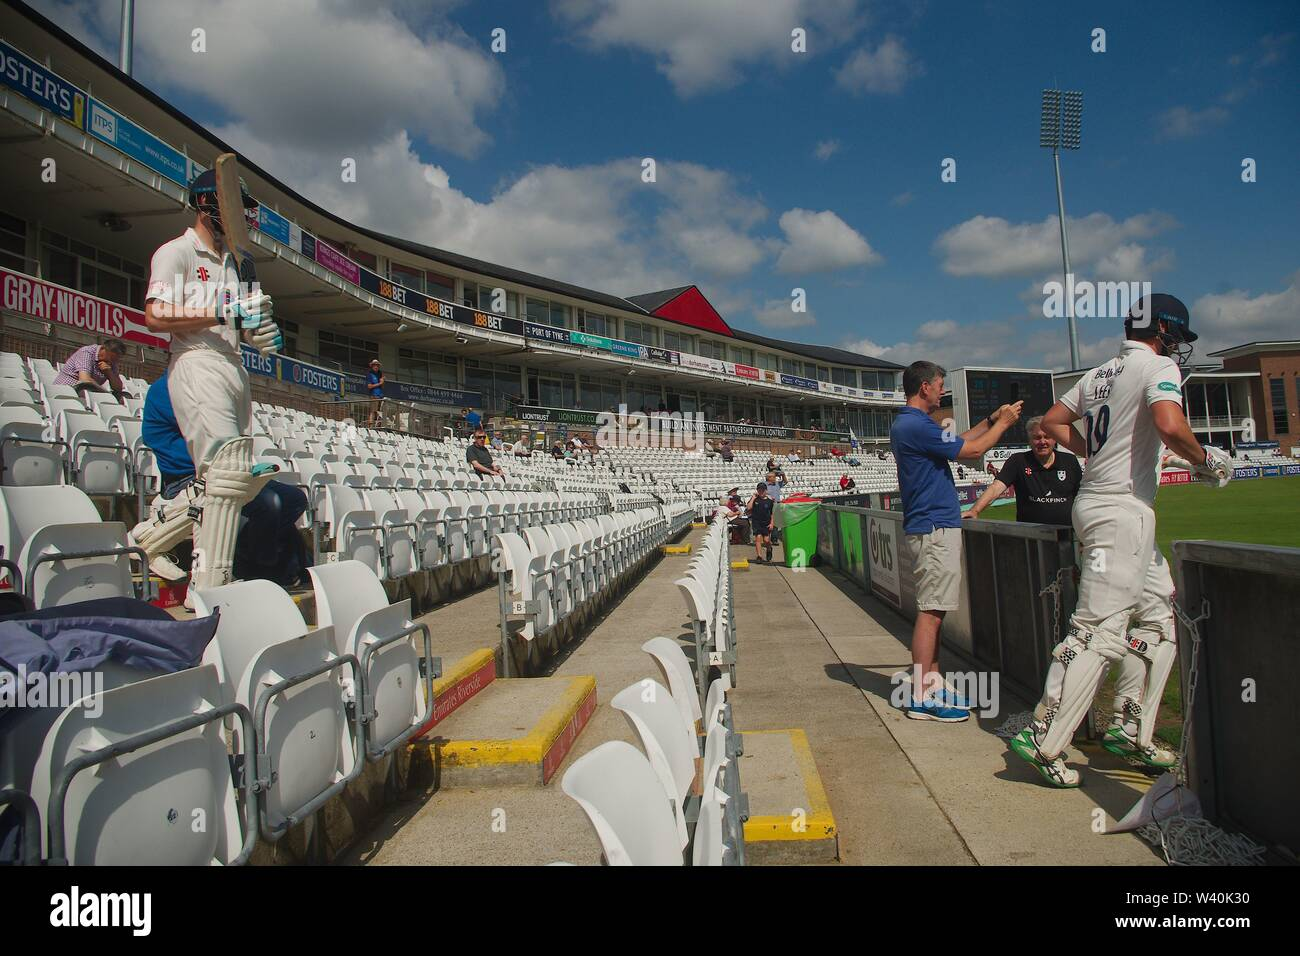 Chester le Street, England, 15 July 2019. Durham batsmen Cameron Bancroft and Alex Lees taking to the field at the start of day 3 in the Specsavers County Championship match against Worcestershire at the Emirates Riverside, Chester le Street. - Stock Image